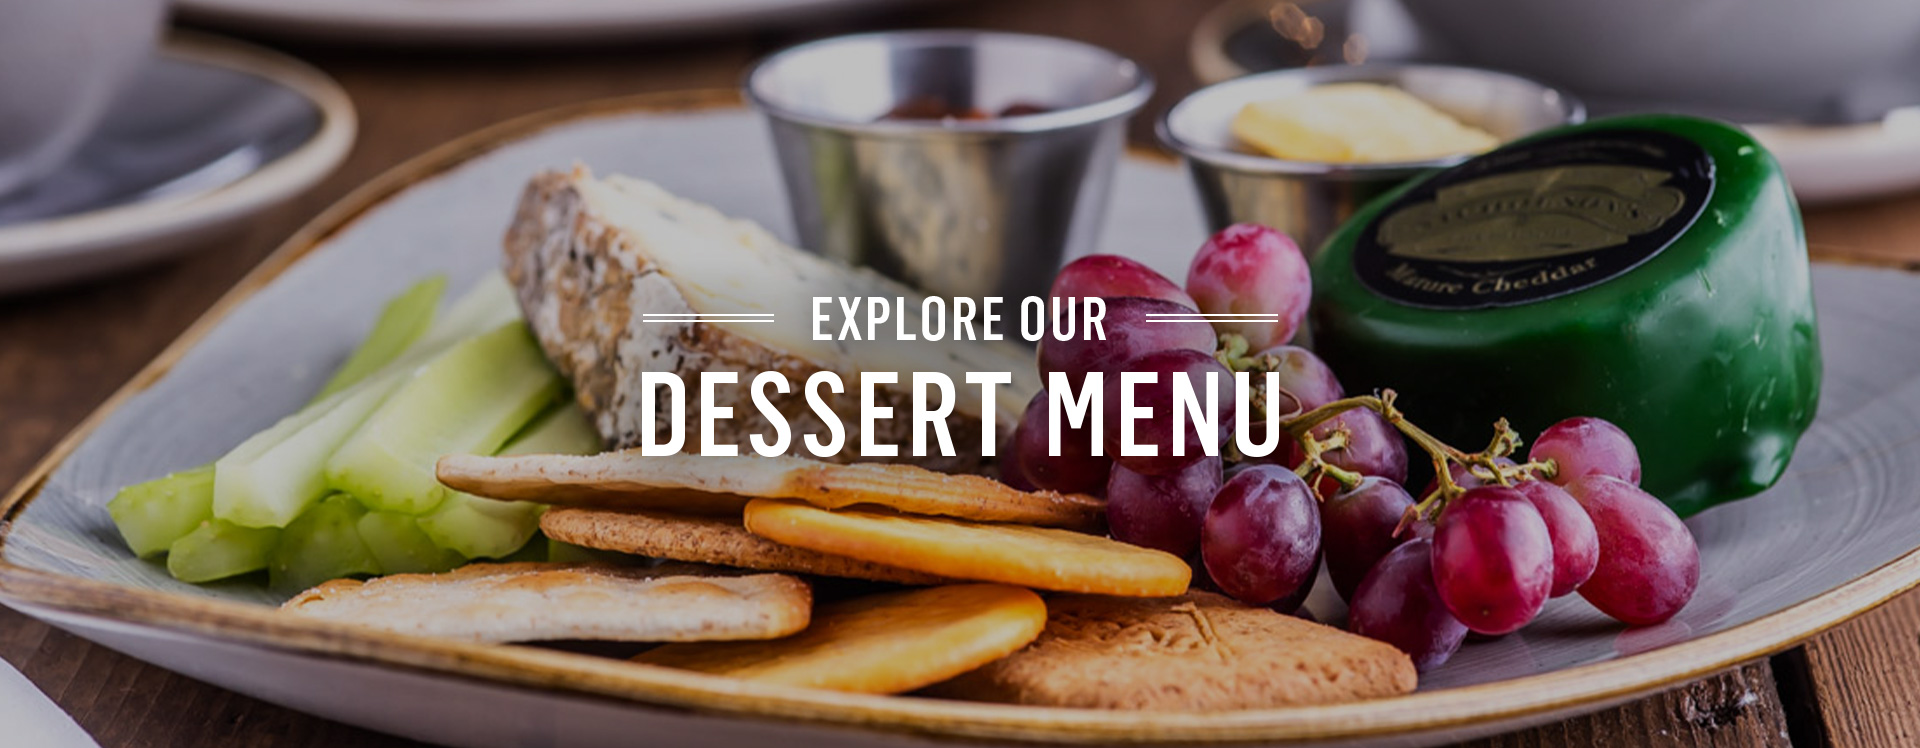 Dessert menu at The Falcon - Book a table